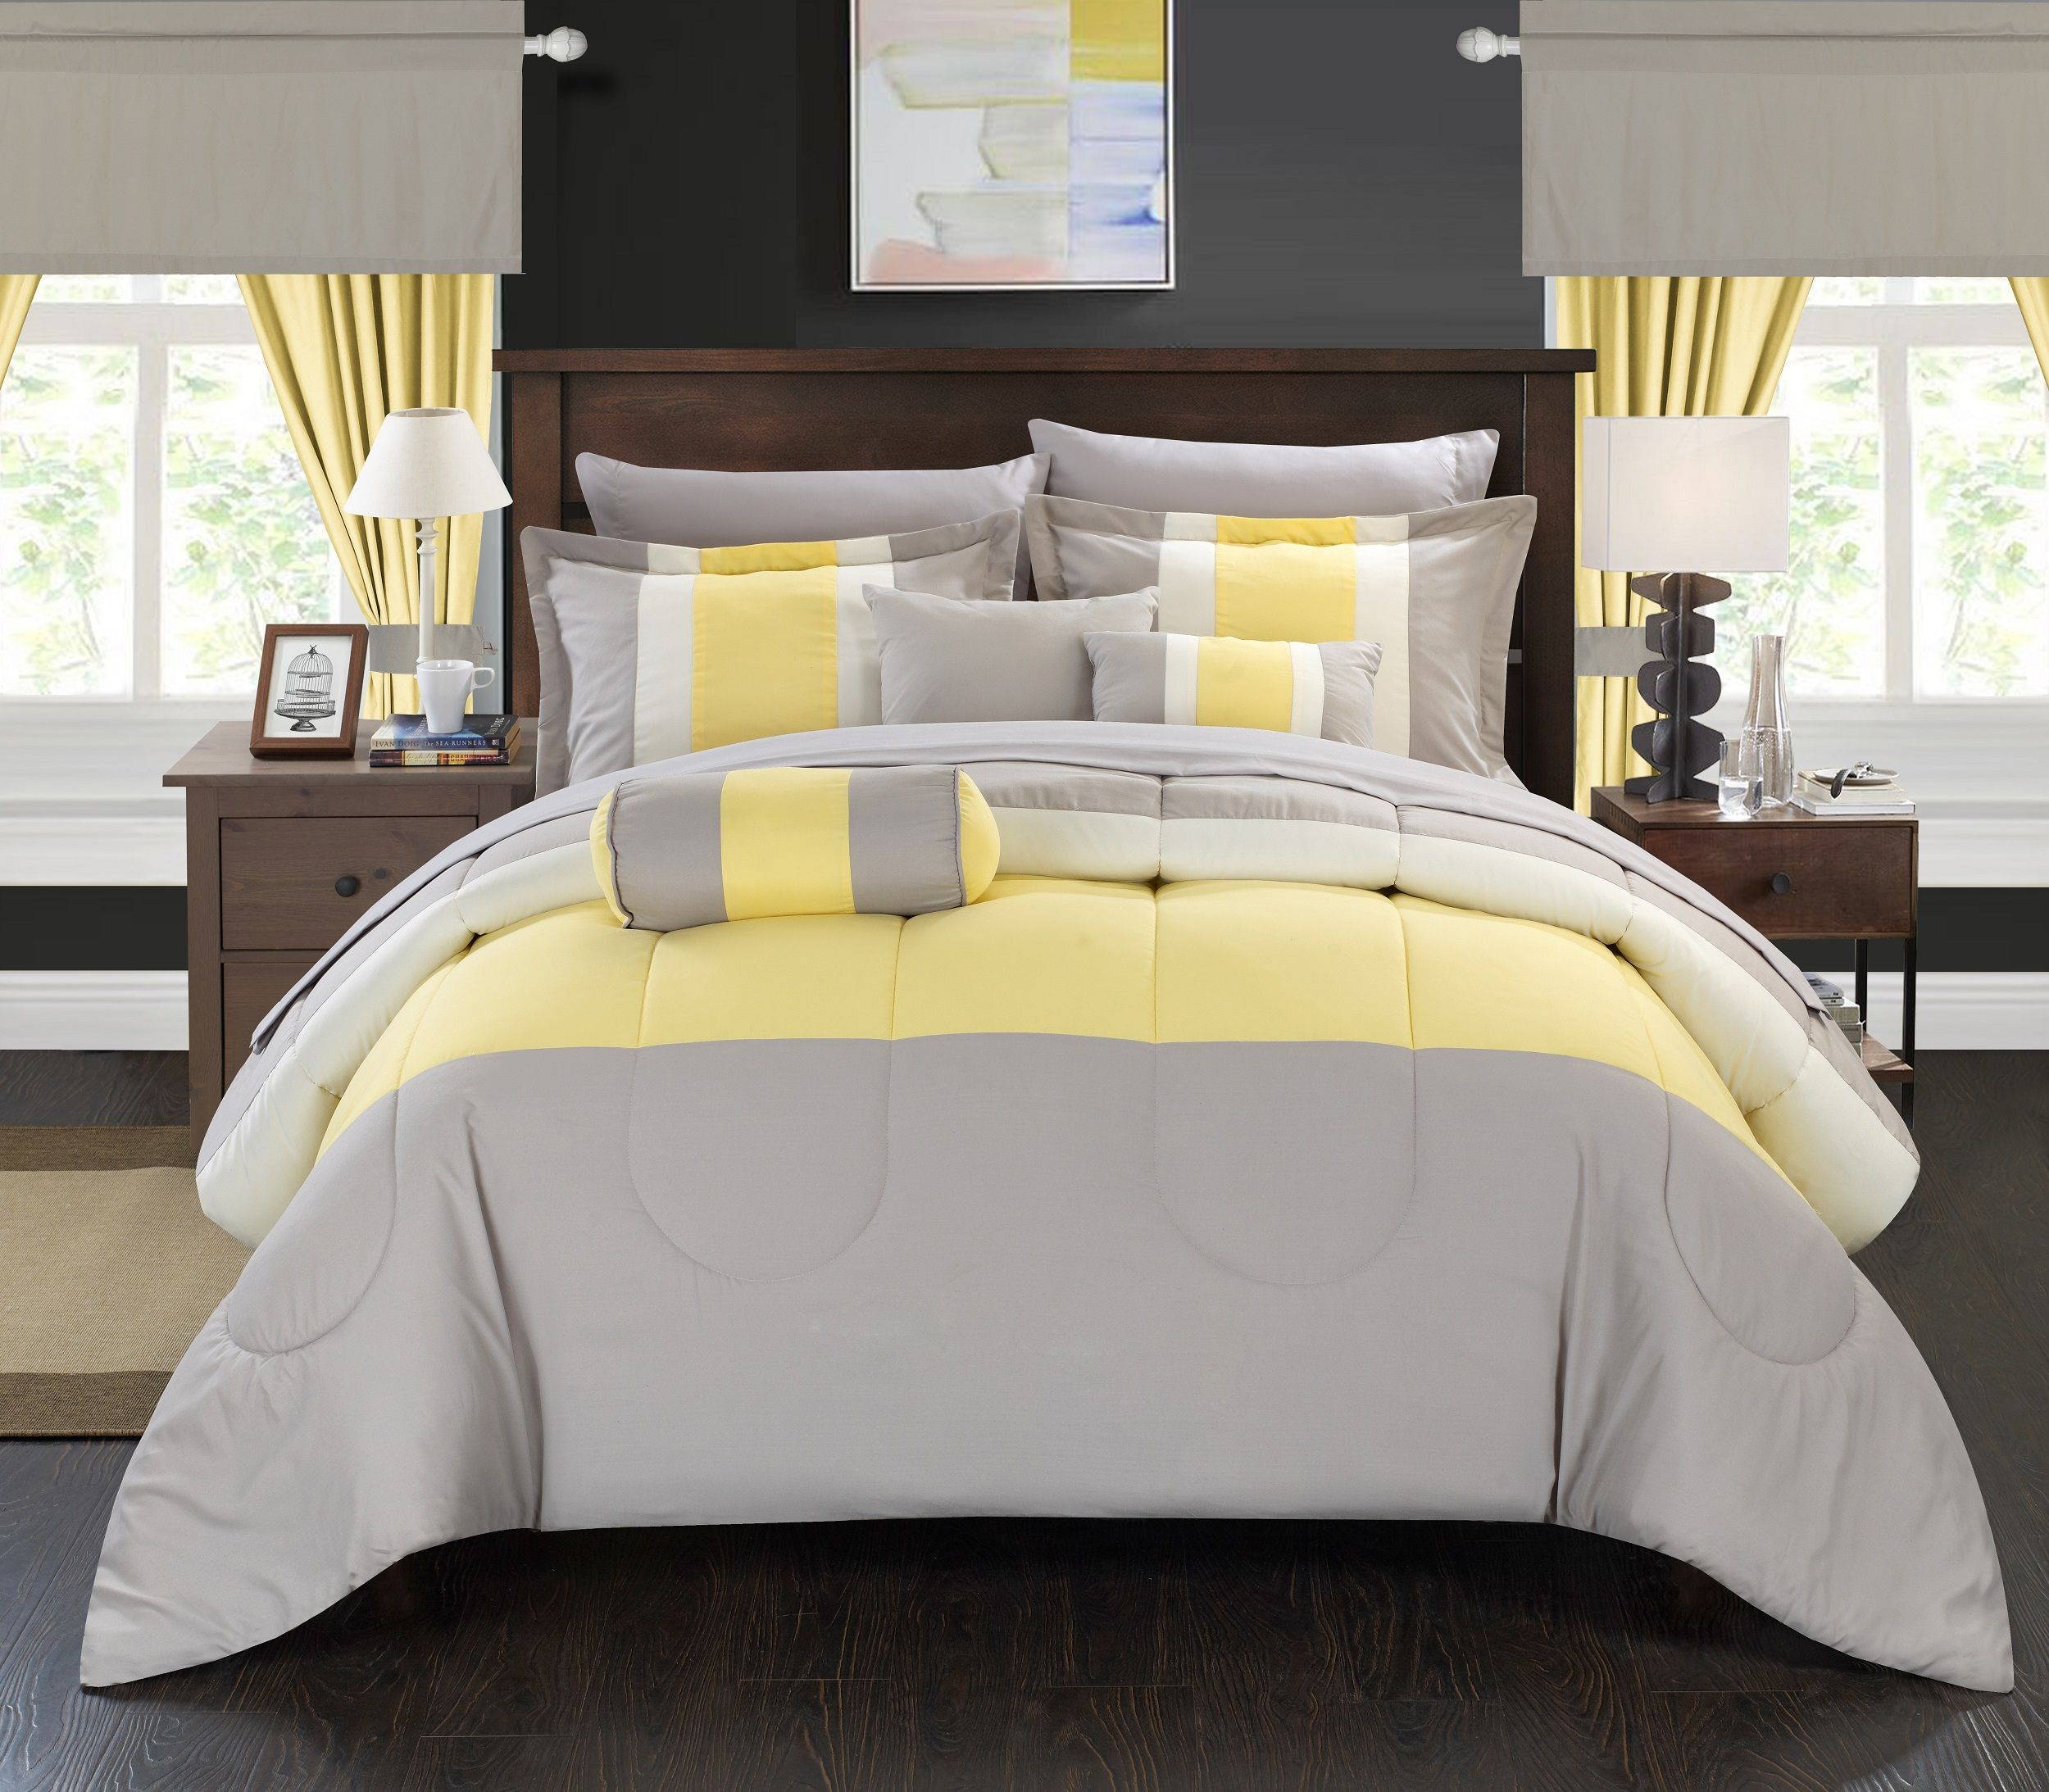 Gray and yellow window treatments - This Four Piece Floral Patterned Comforter Set By Mi Zone Livens Up Your Existing Bedroom Decor With Pops Of Vibrant Yellow Dark Grey And Black Accents